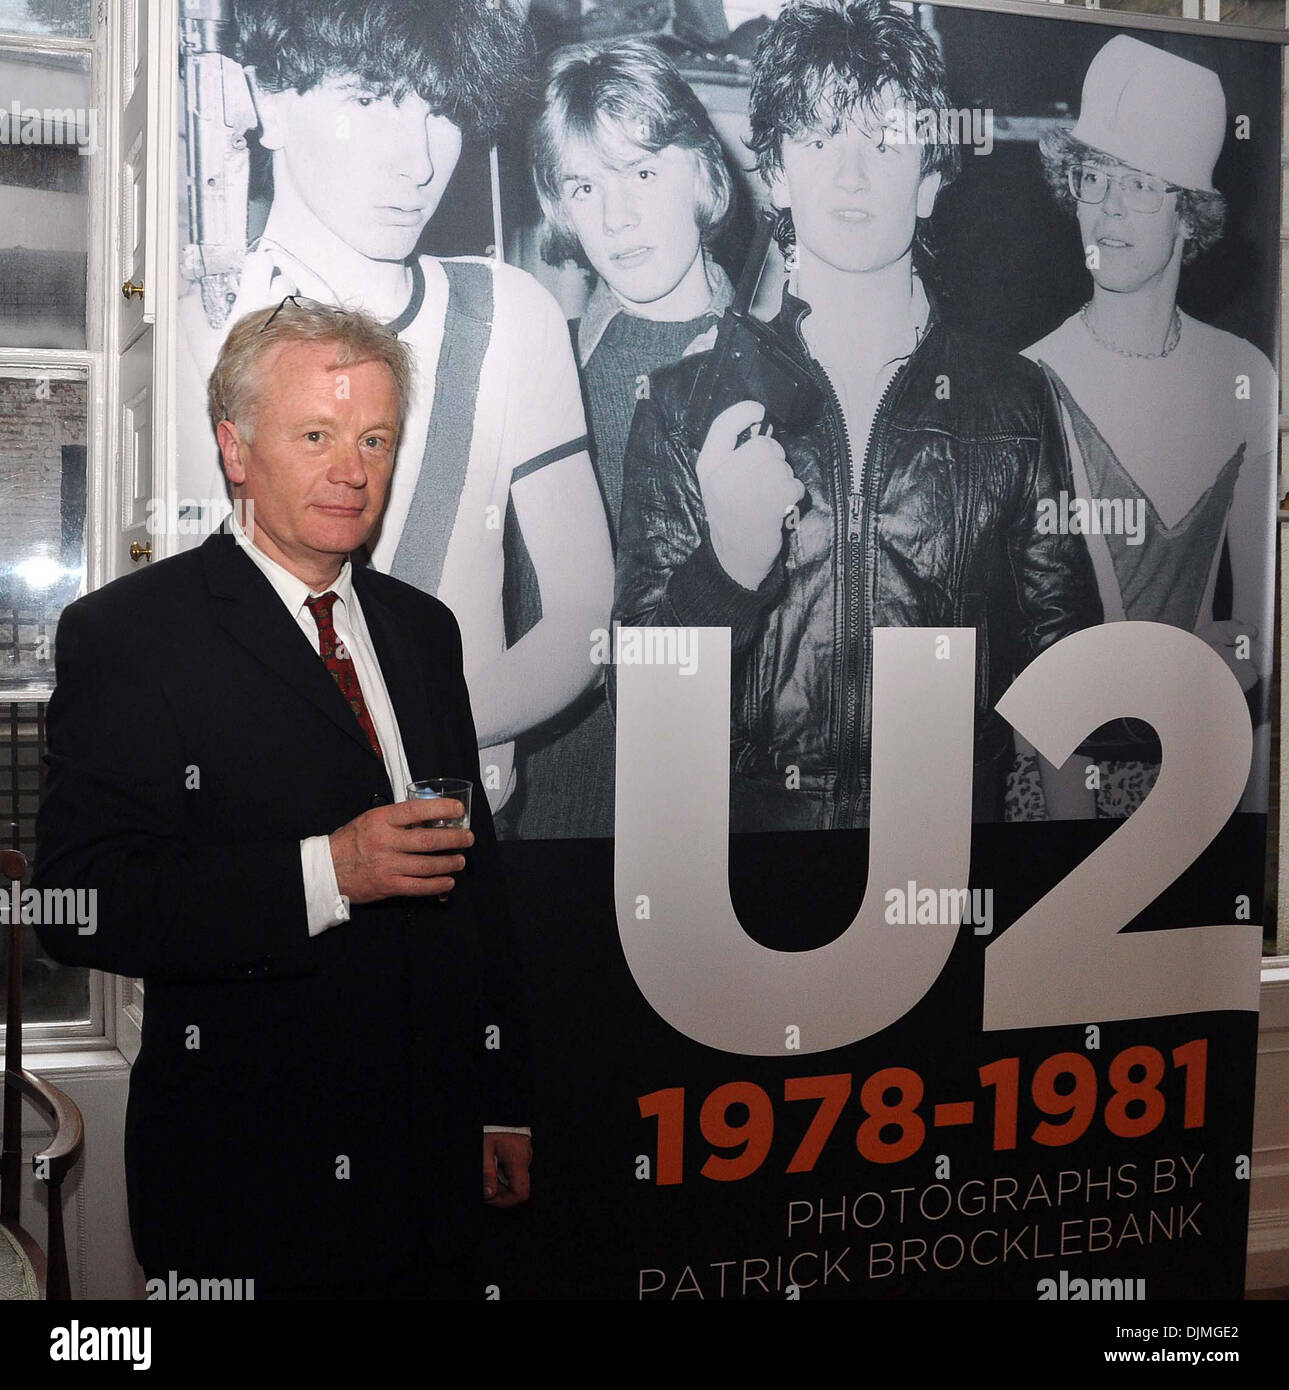 Patrick Brocklebank U2 Manager Paul McGuinness officially opened photography exhibition U2:1978-81 at Little Museum Stock Photo